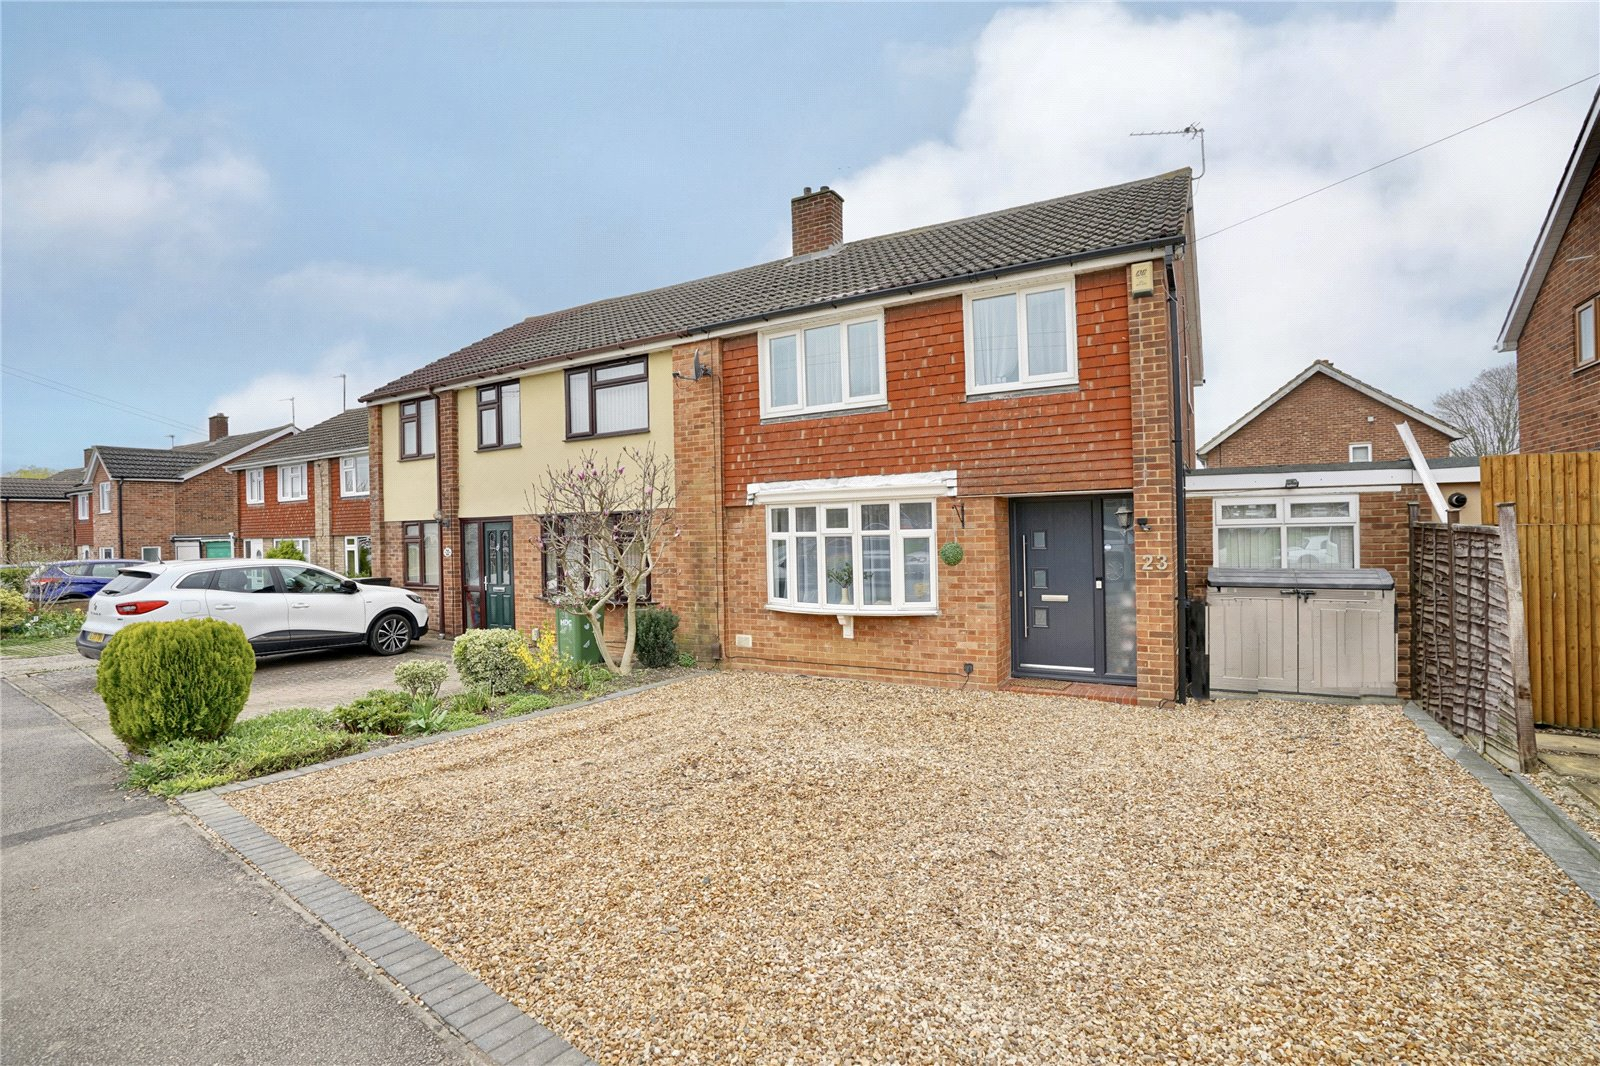 3 bed house for sale in St. Neots, PE19 1SS, PE19